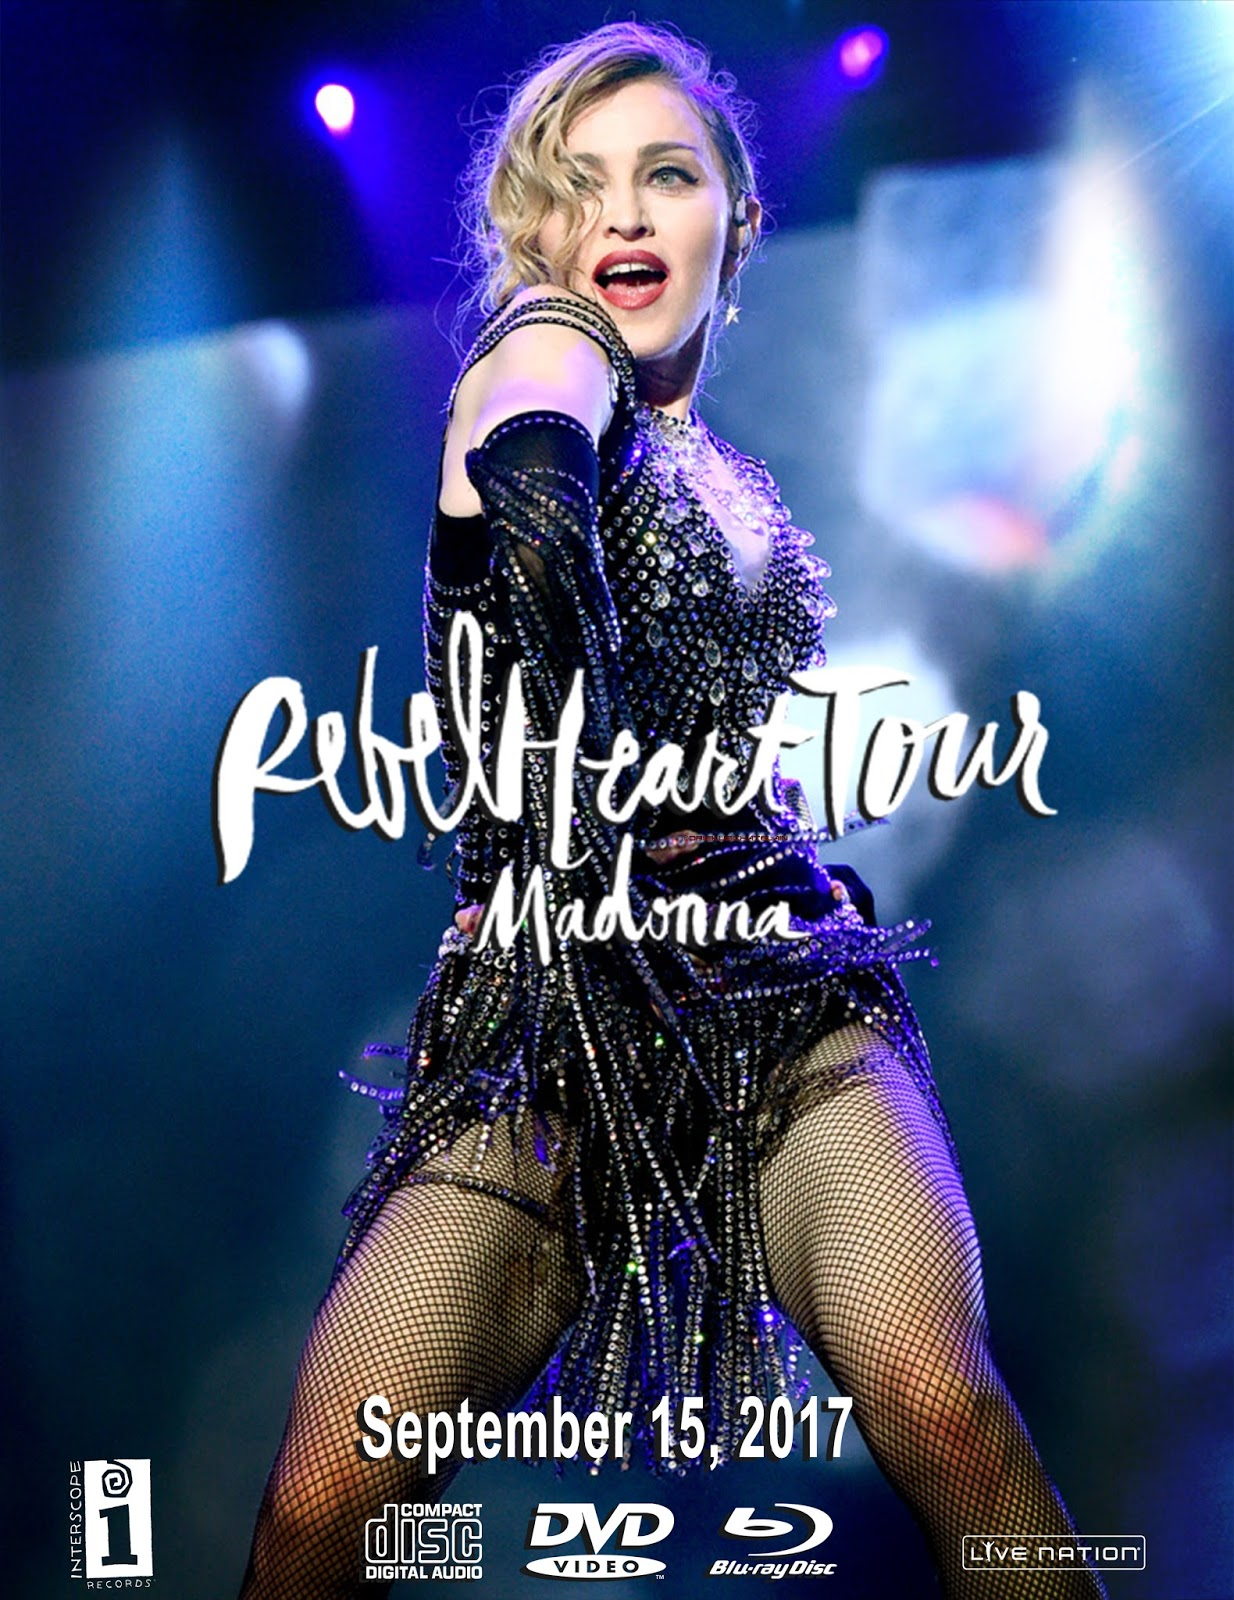 madonna fanmade covers rebel heart tour fanmade dvdampcd